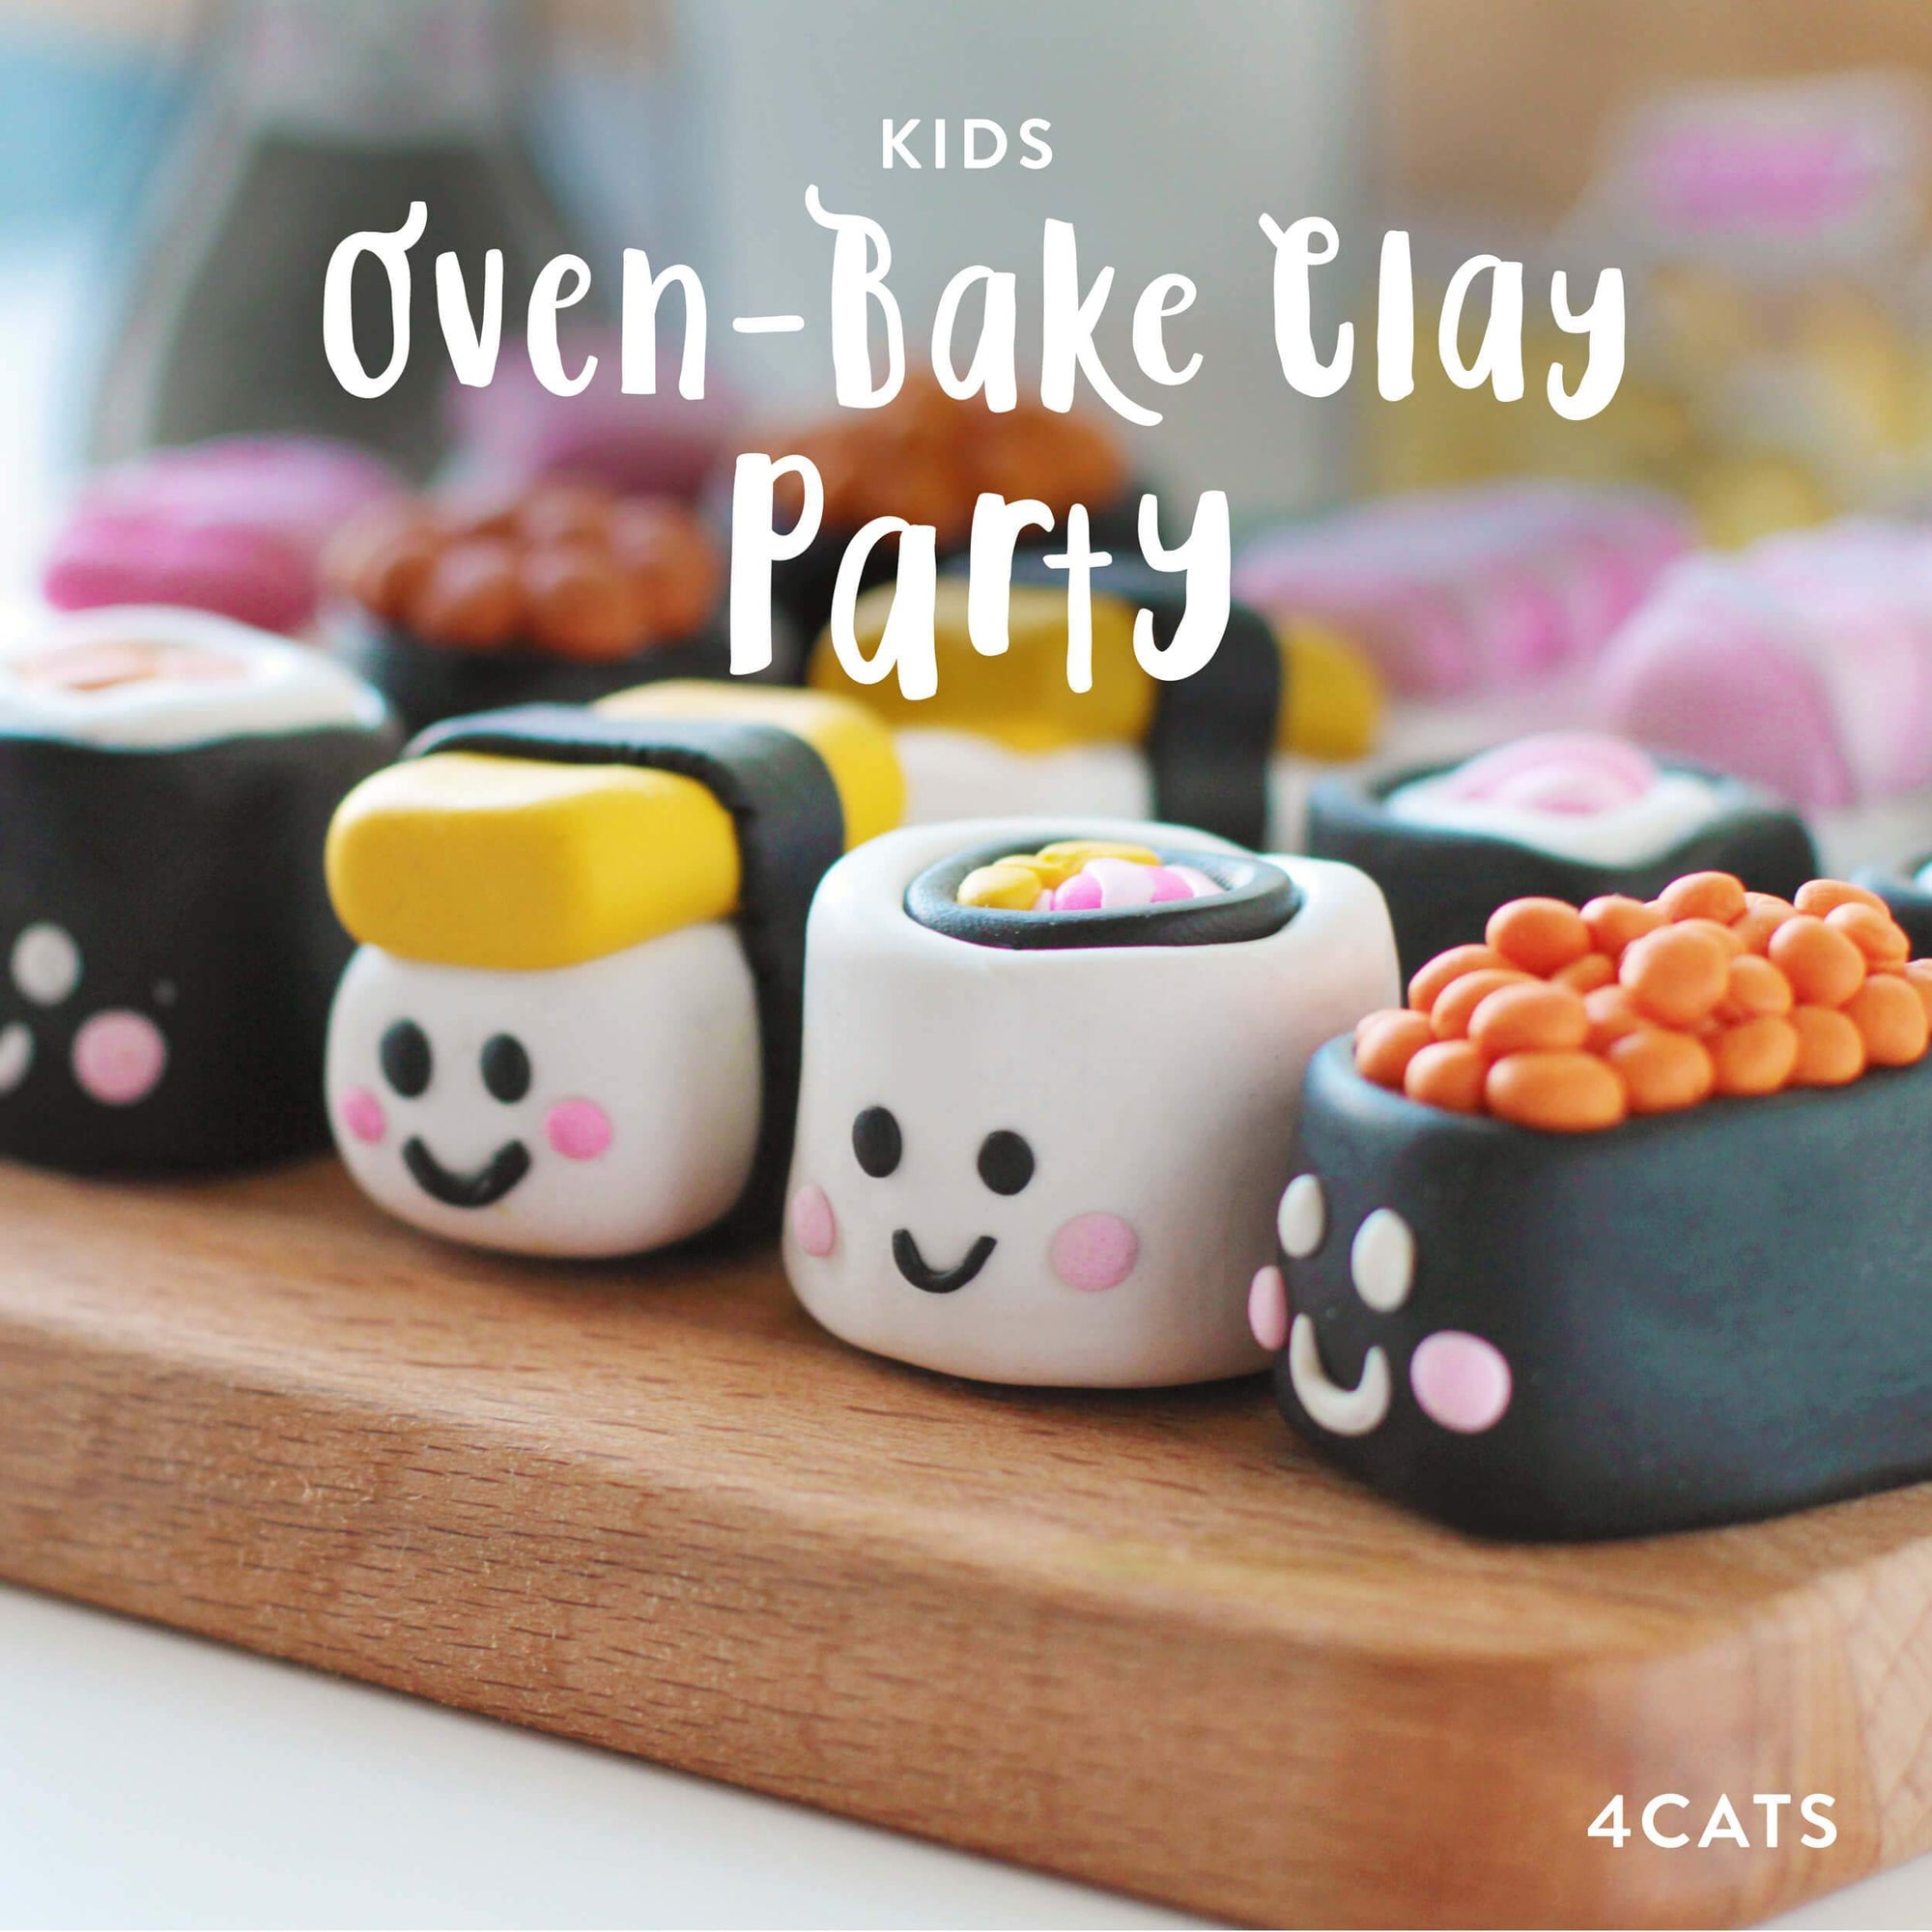 Kids Oven-Bake Clay Party